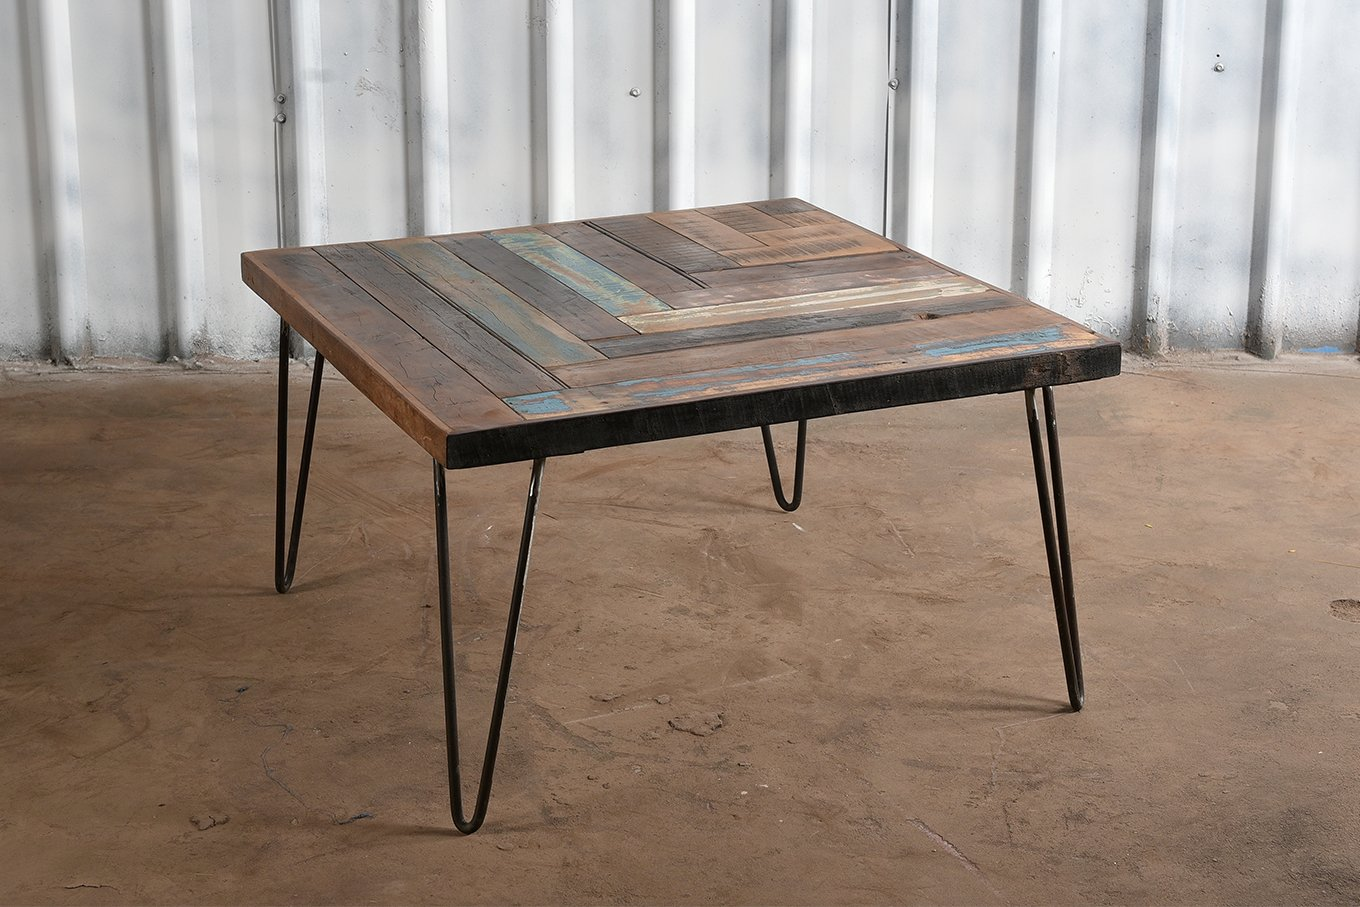 Reclaimed wooden top in chevron pattern with iron legs